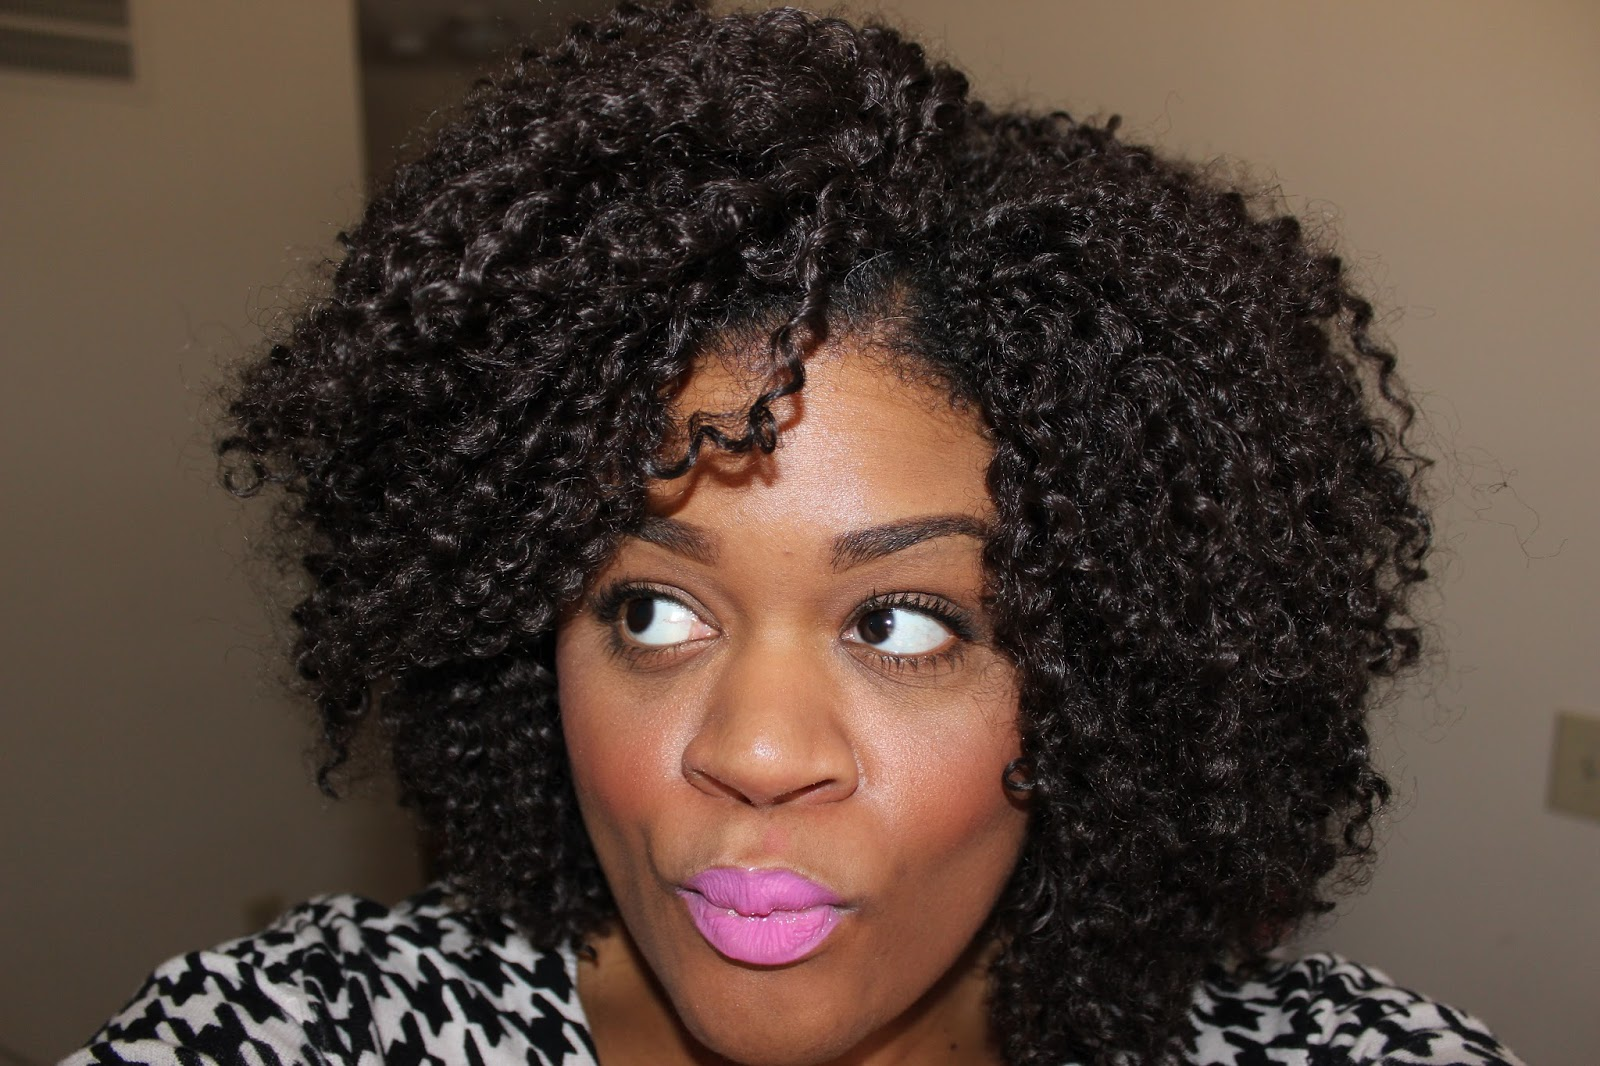 Crochet Hair At Night : FabEllis: Natural Hair How I Maintain My Crochet Braids